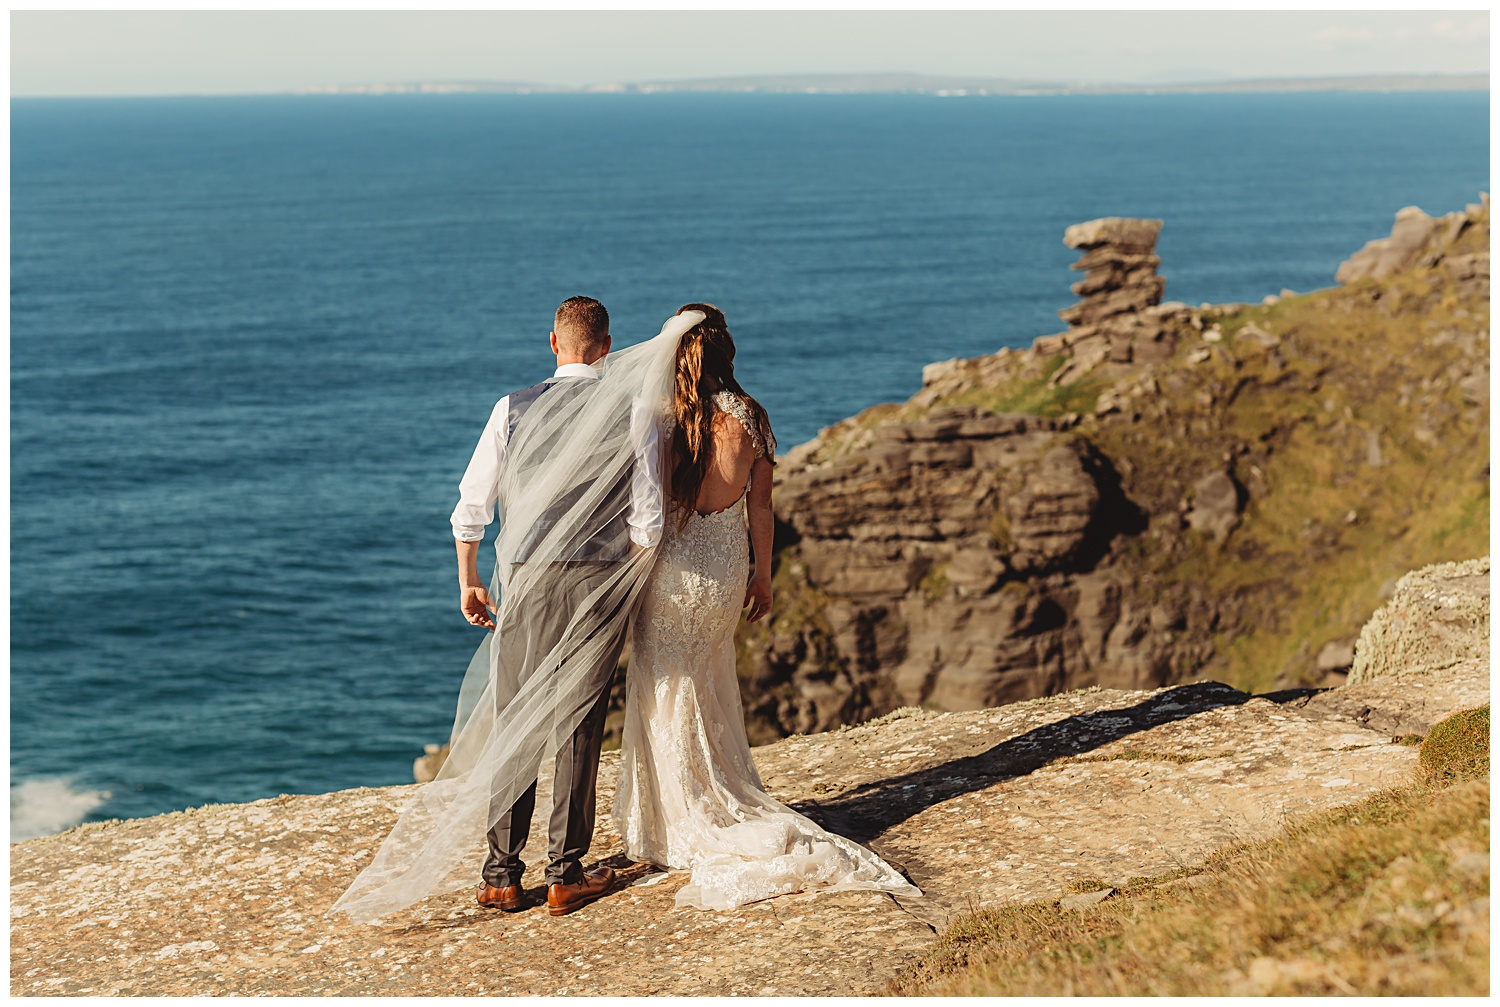 The Cliffs of Moher Destination Wedding Liscannor, County Clare, Ireland_1273.jpg